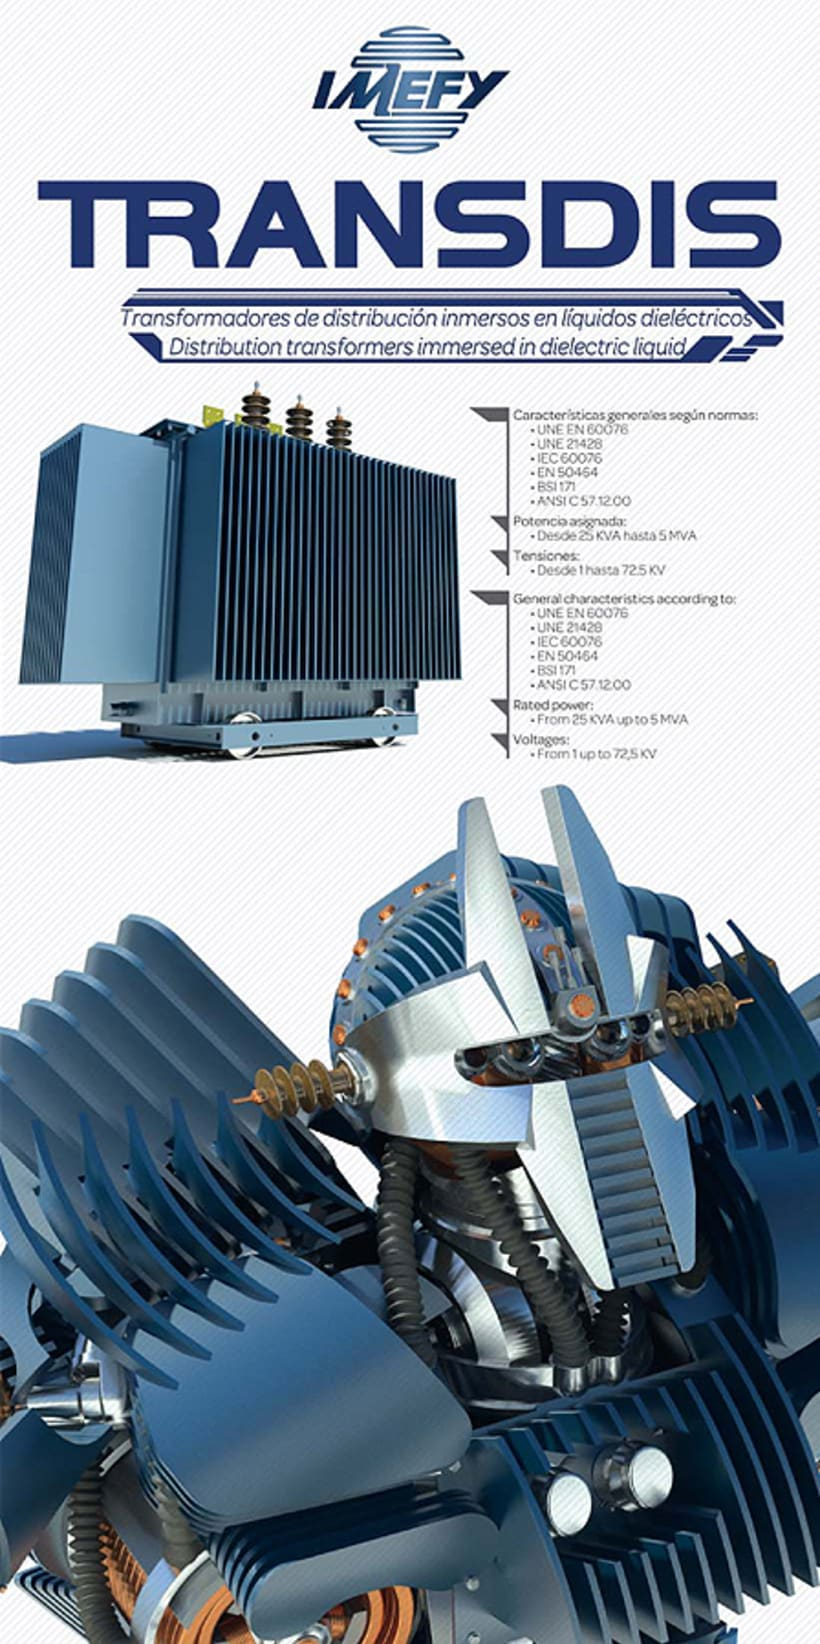 Imefy, the real manufacturer of transformers in the world. 4